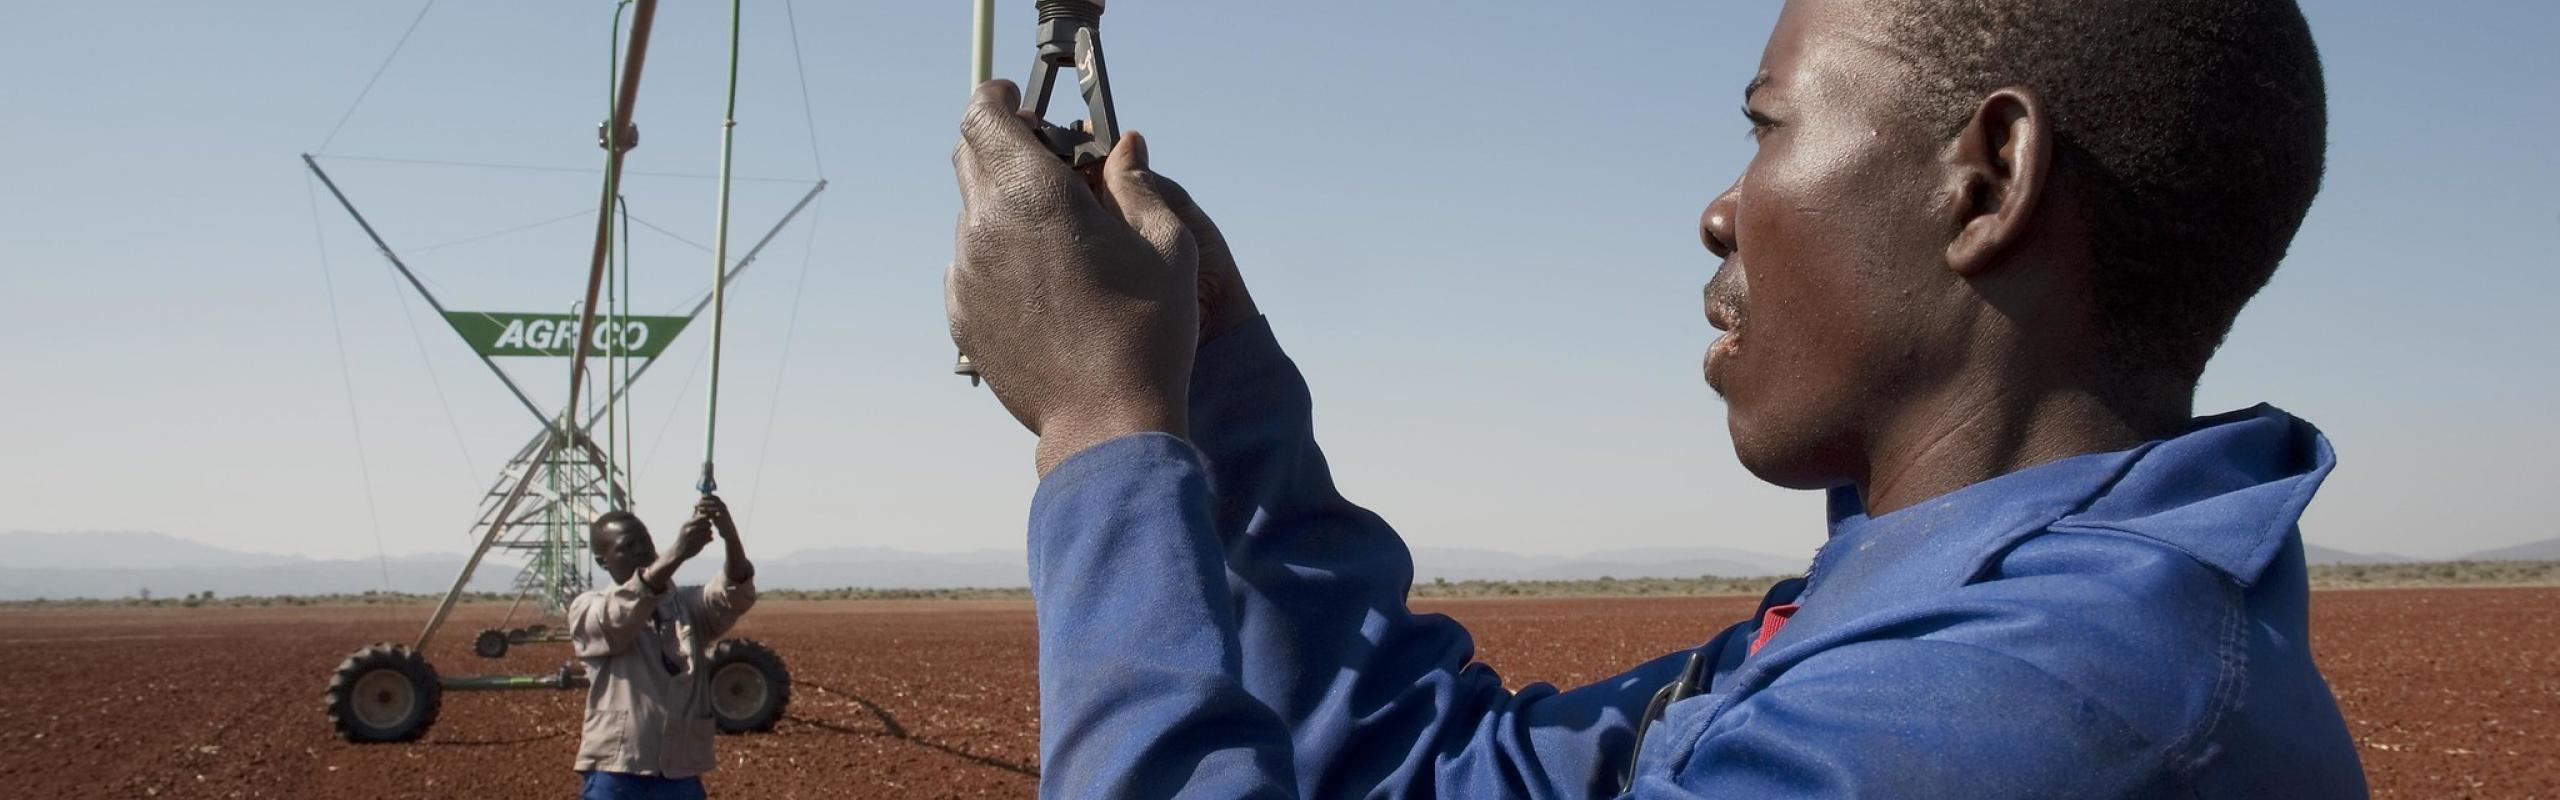 Two men prepare irrigation equipment on a field  in Strydkraal, South Africa